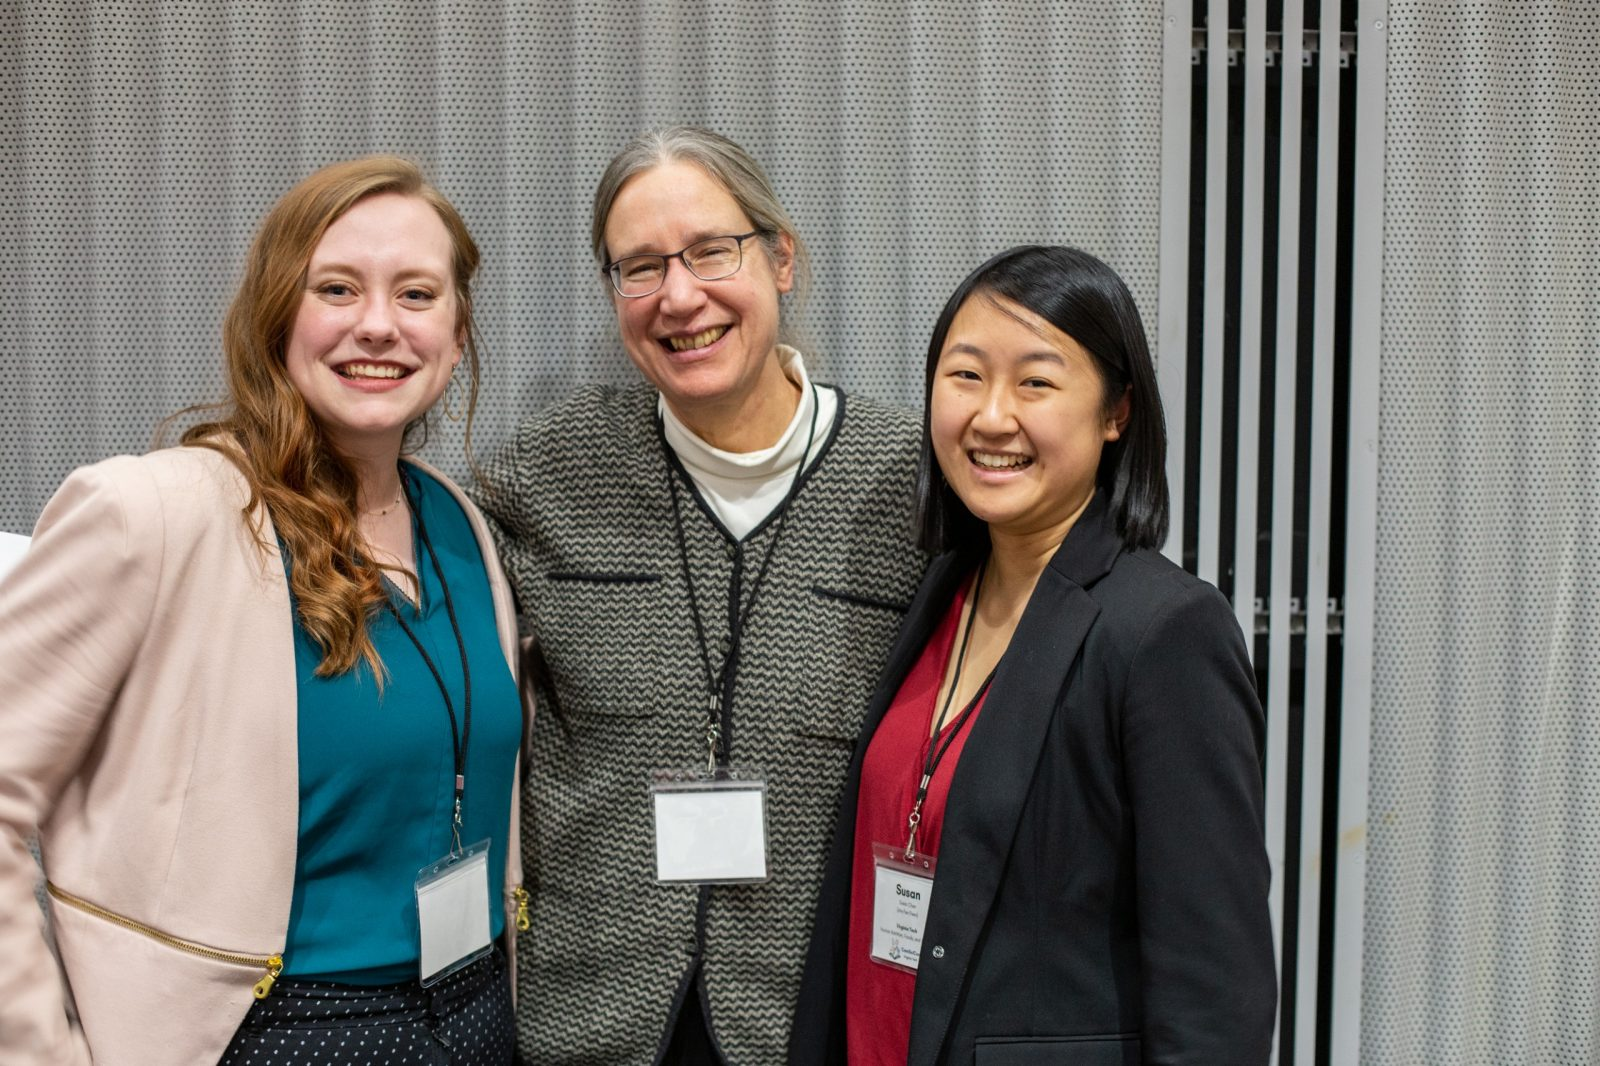 Stephanie Edwards Compton (left) and Susan Chen (right) were the co-chairs of the ComSciCon organizing committee. Carrie Kroehler (center), associate director for the Center for Communicating Science, attended and participated in many workshops. Photo courtesy of Alex Freeze.